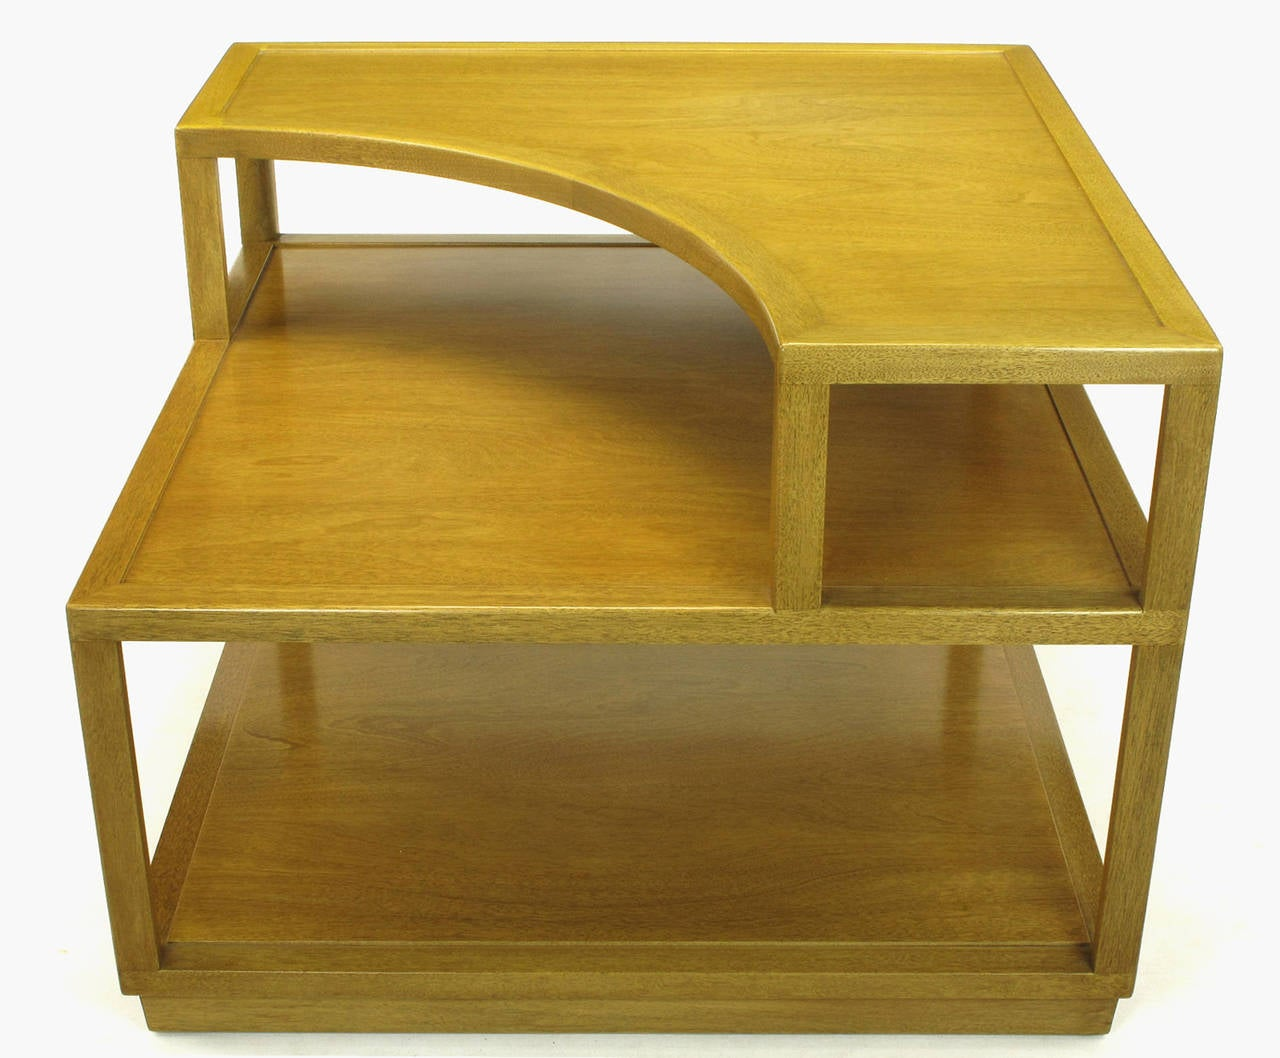 Mid-20th Century Edward Wormley Bleached Mahogany Corner Table for Dunbar For Sale